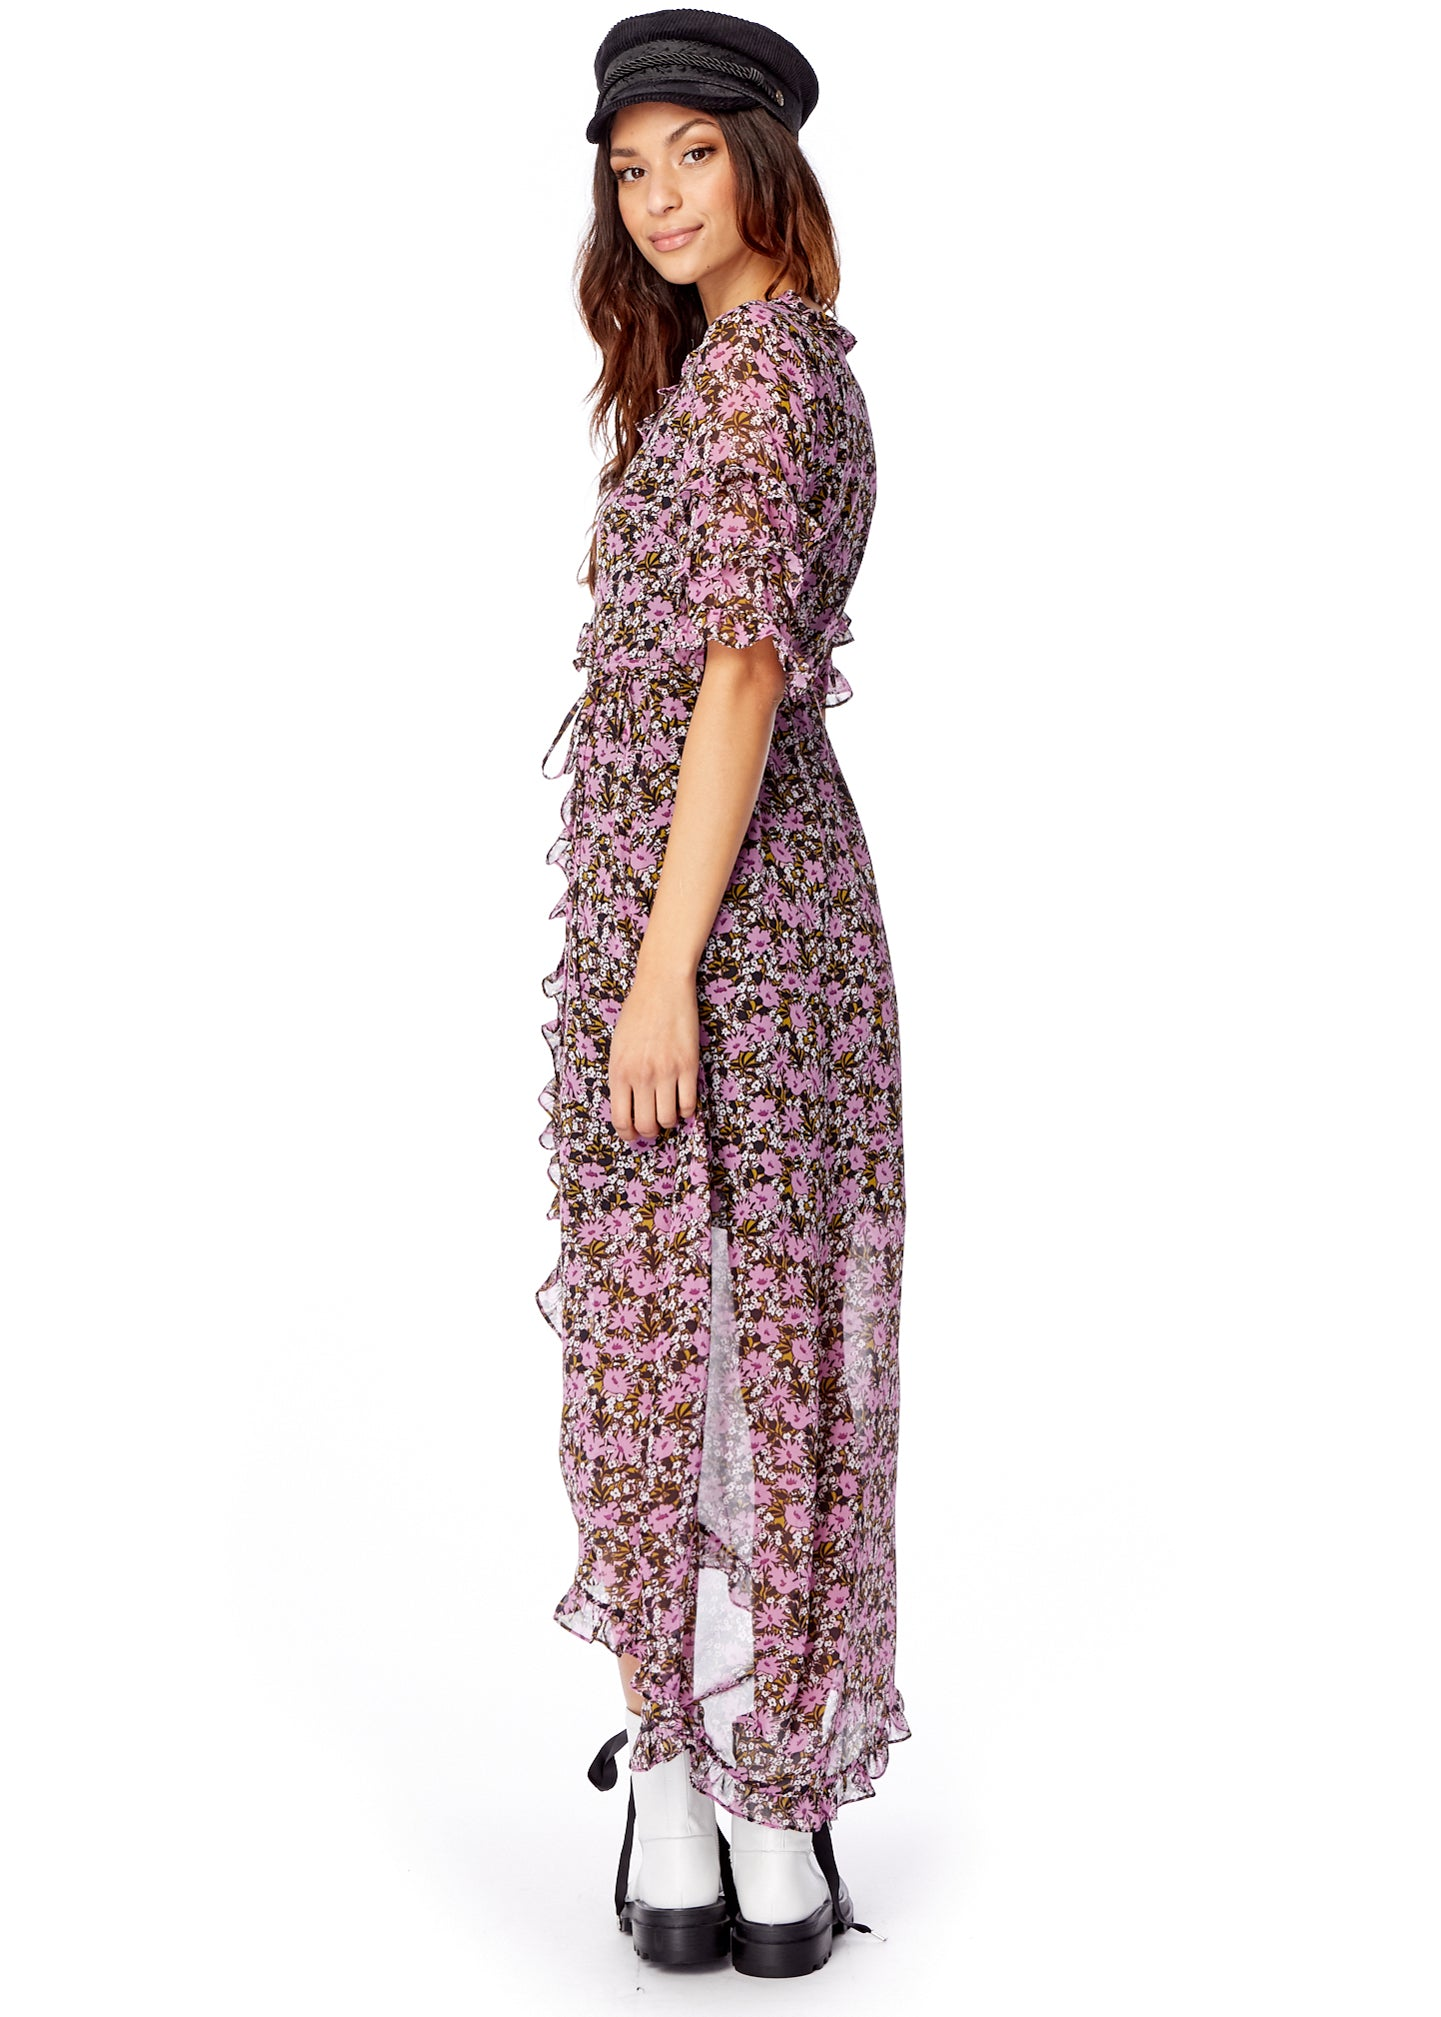 Lovestoned Wrap Dress